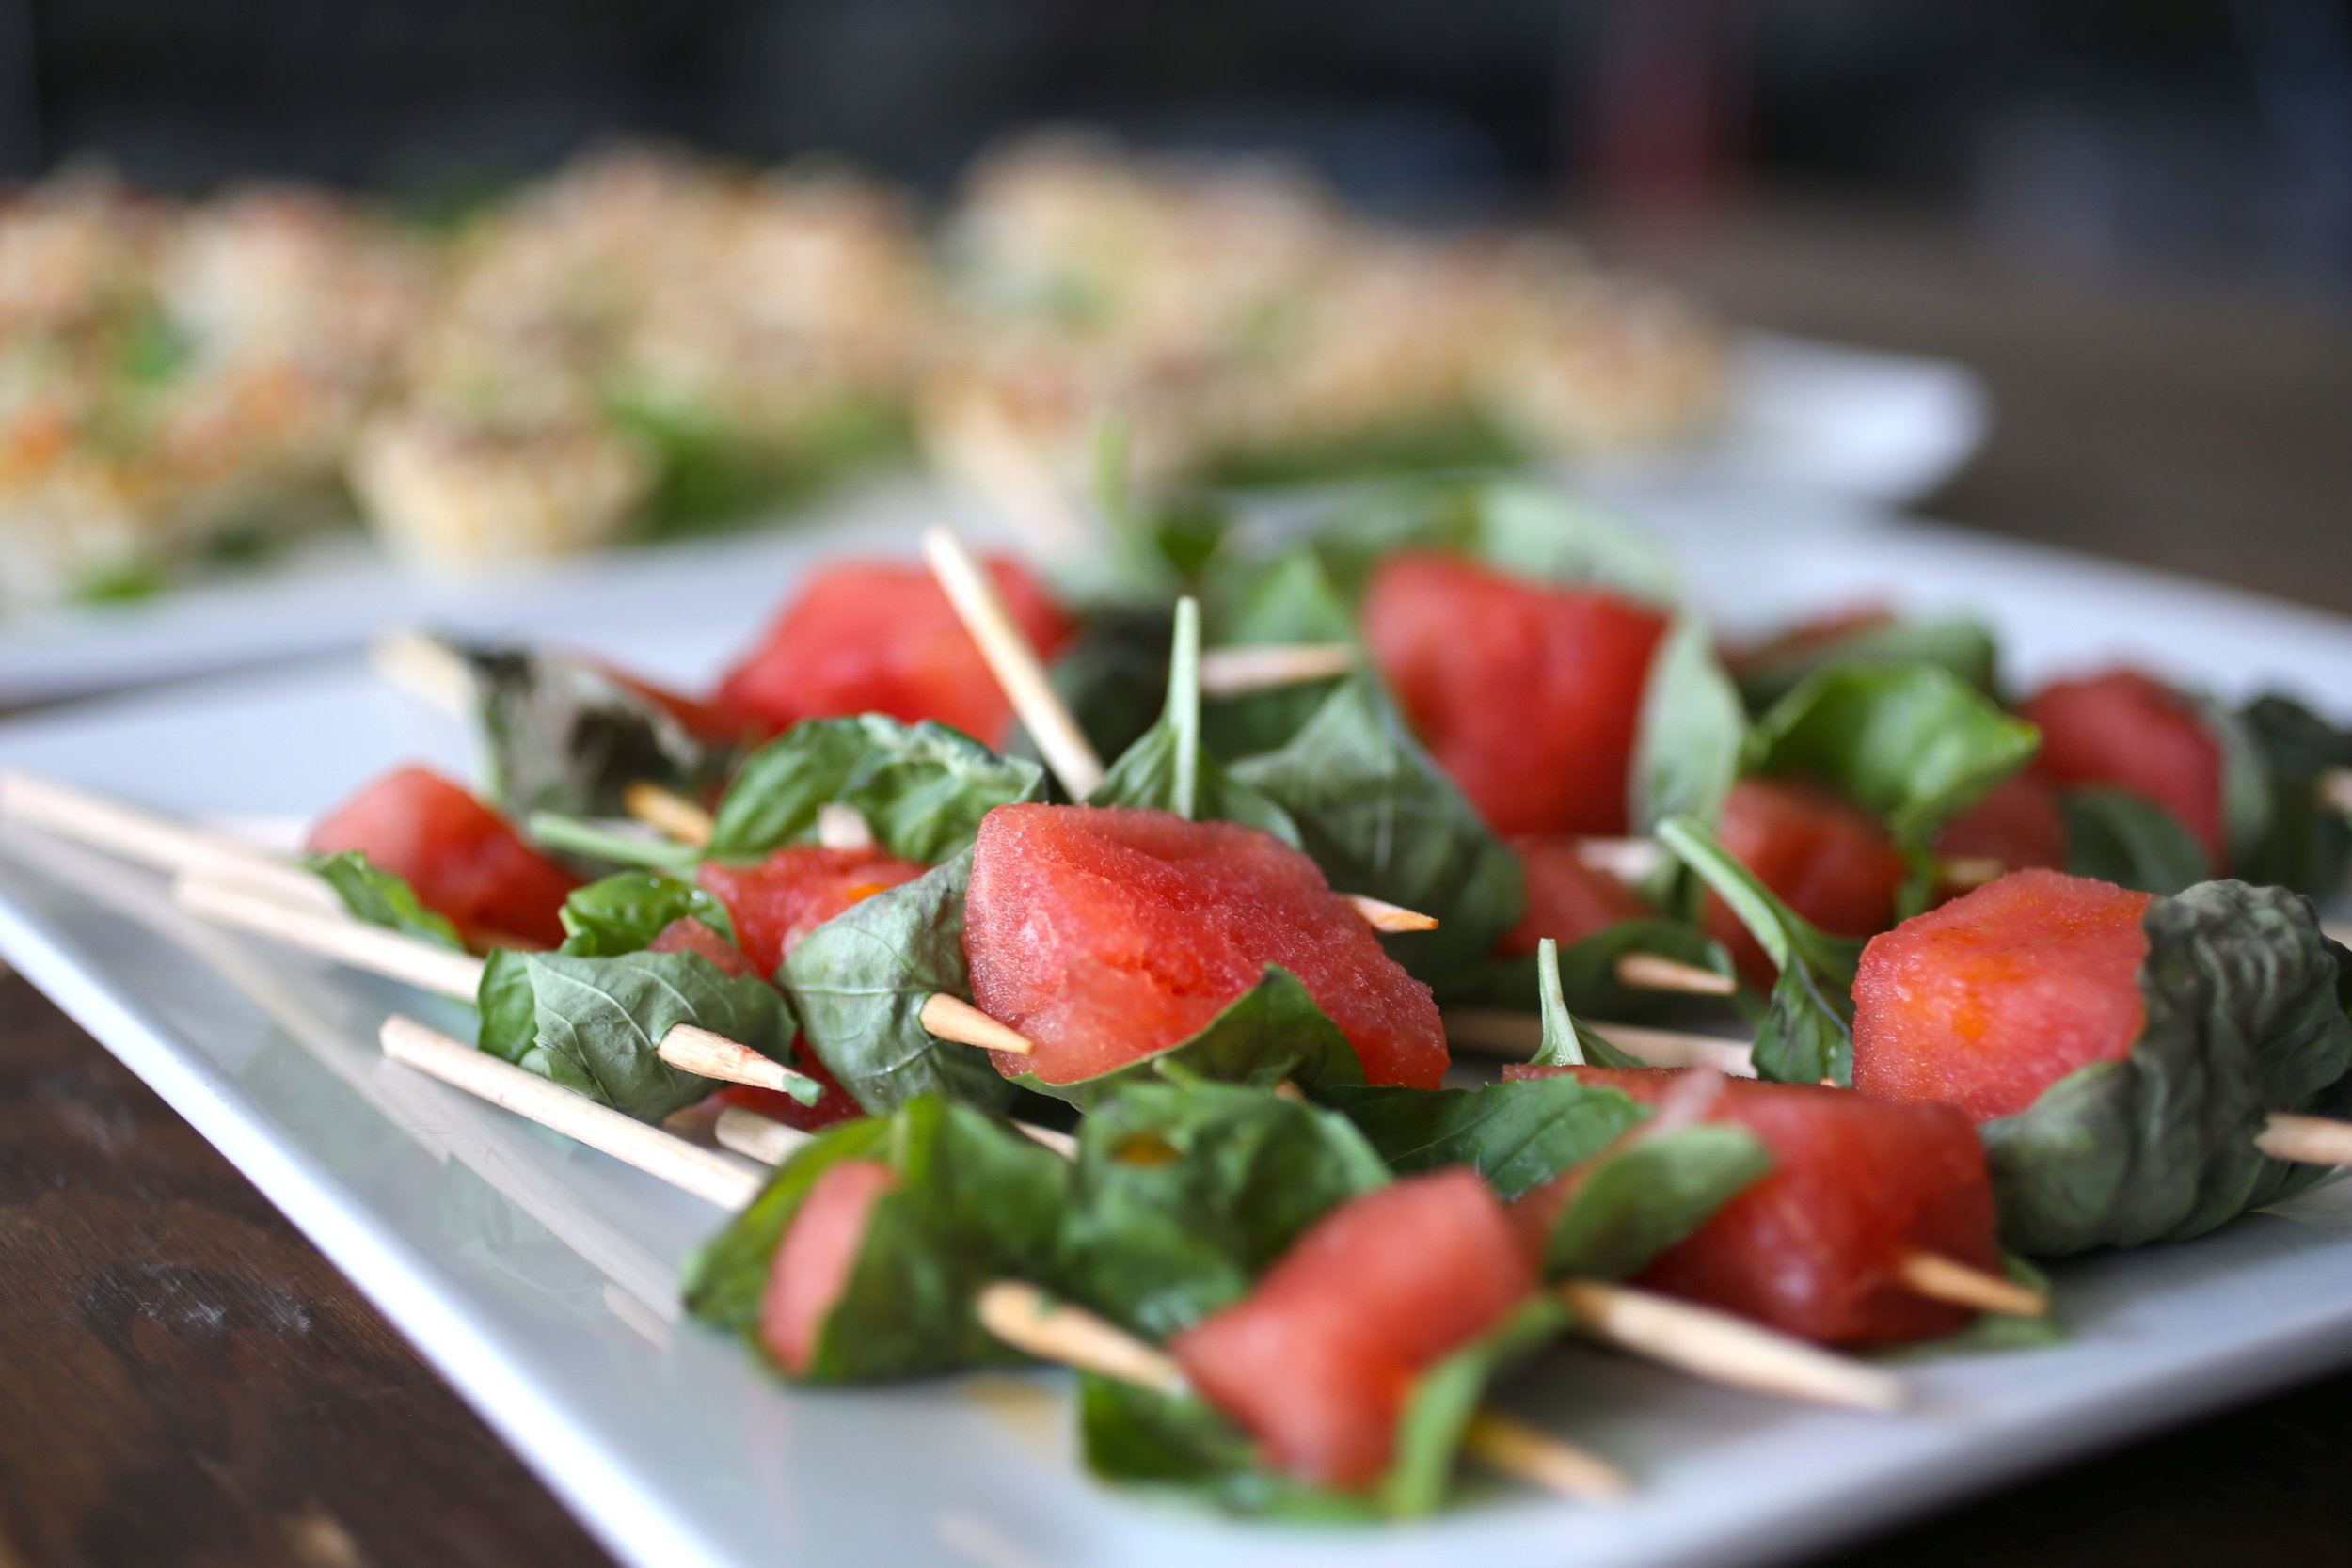 myvice catering appetizers at jupiter hotel by anna mehrer.JPG